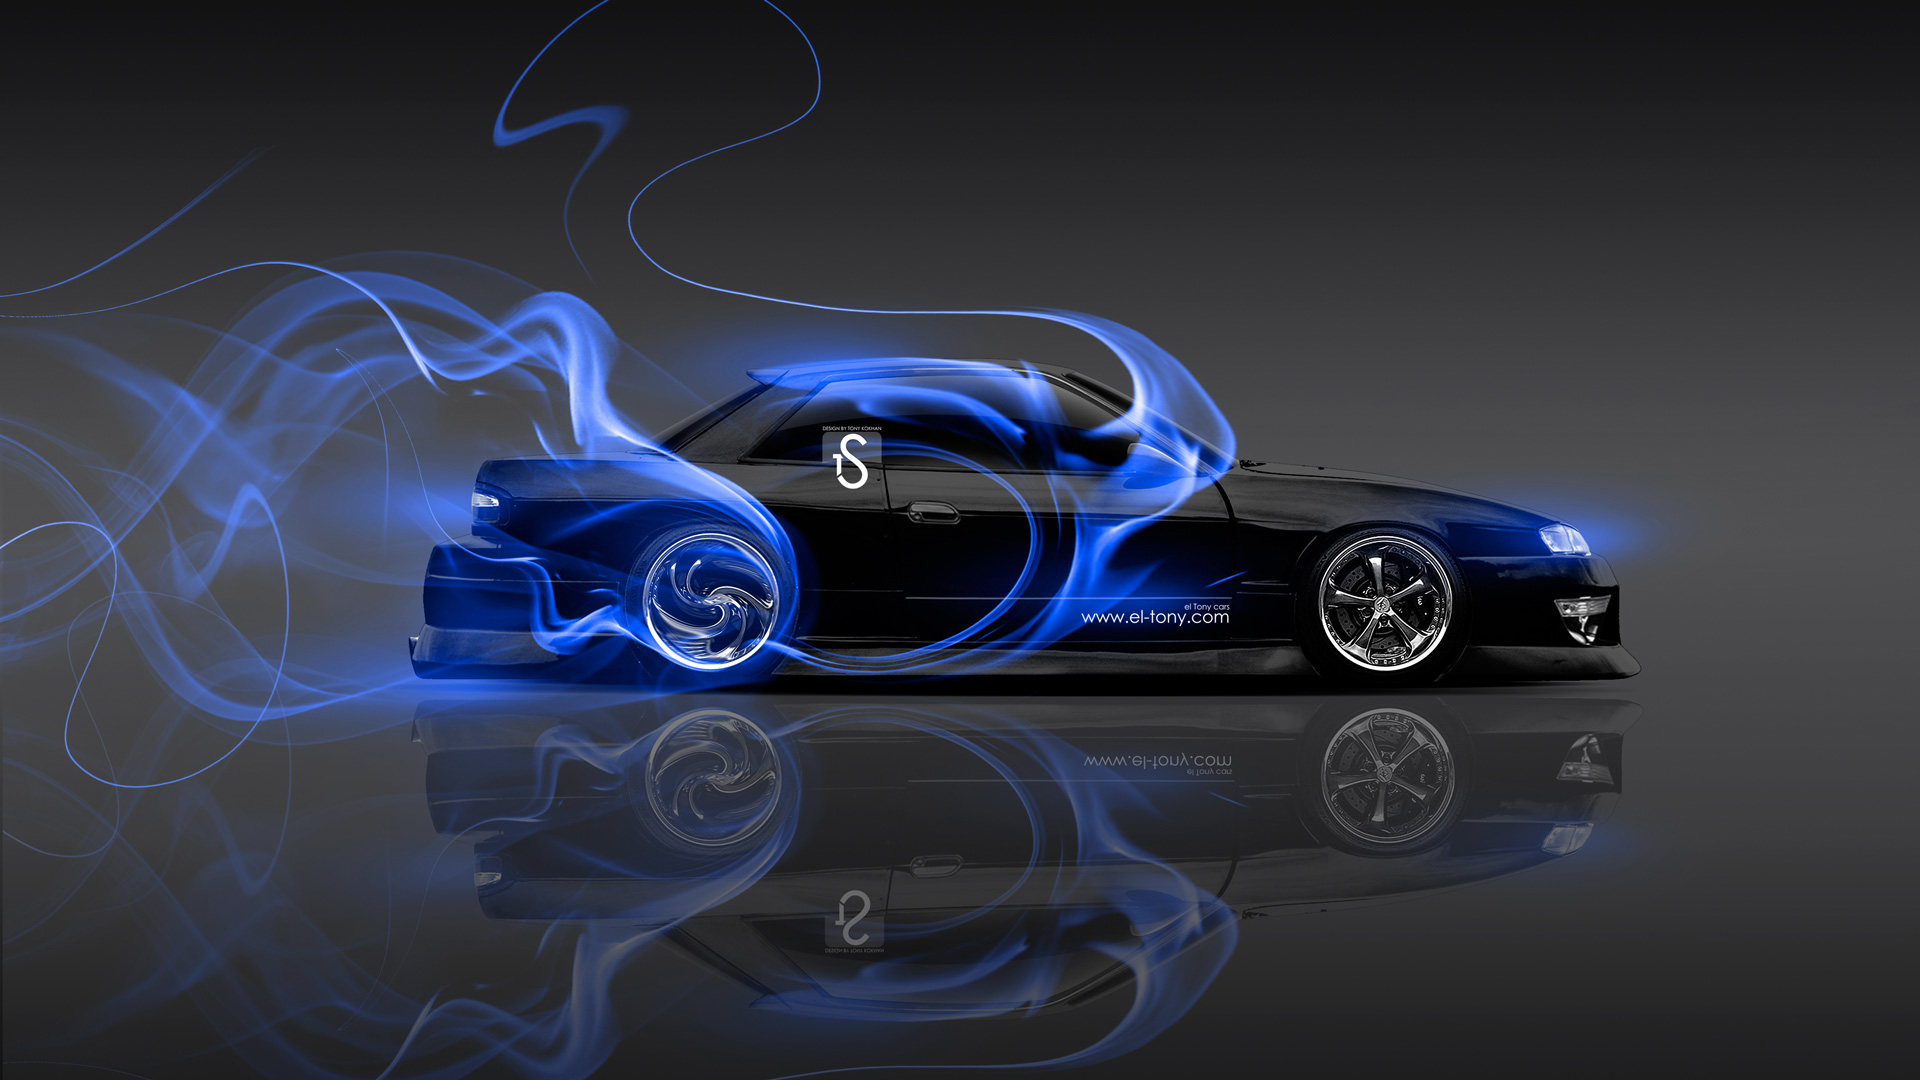 Charming Nissan Silvia S13 JDM 240SX Blue Smoke Drift